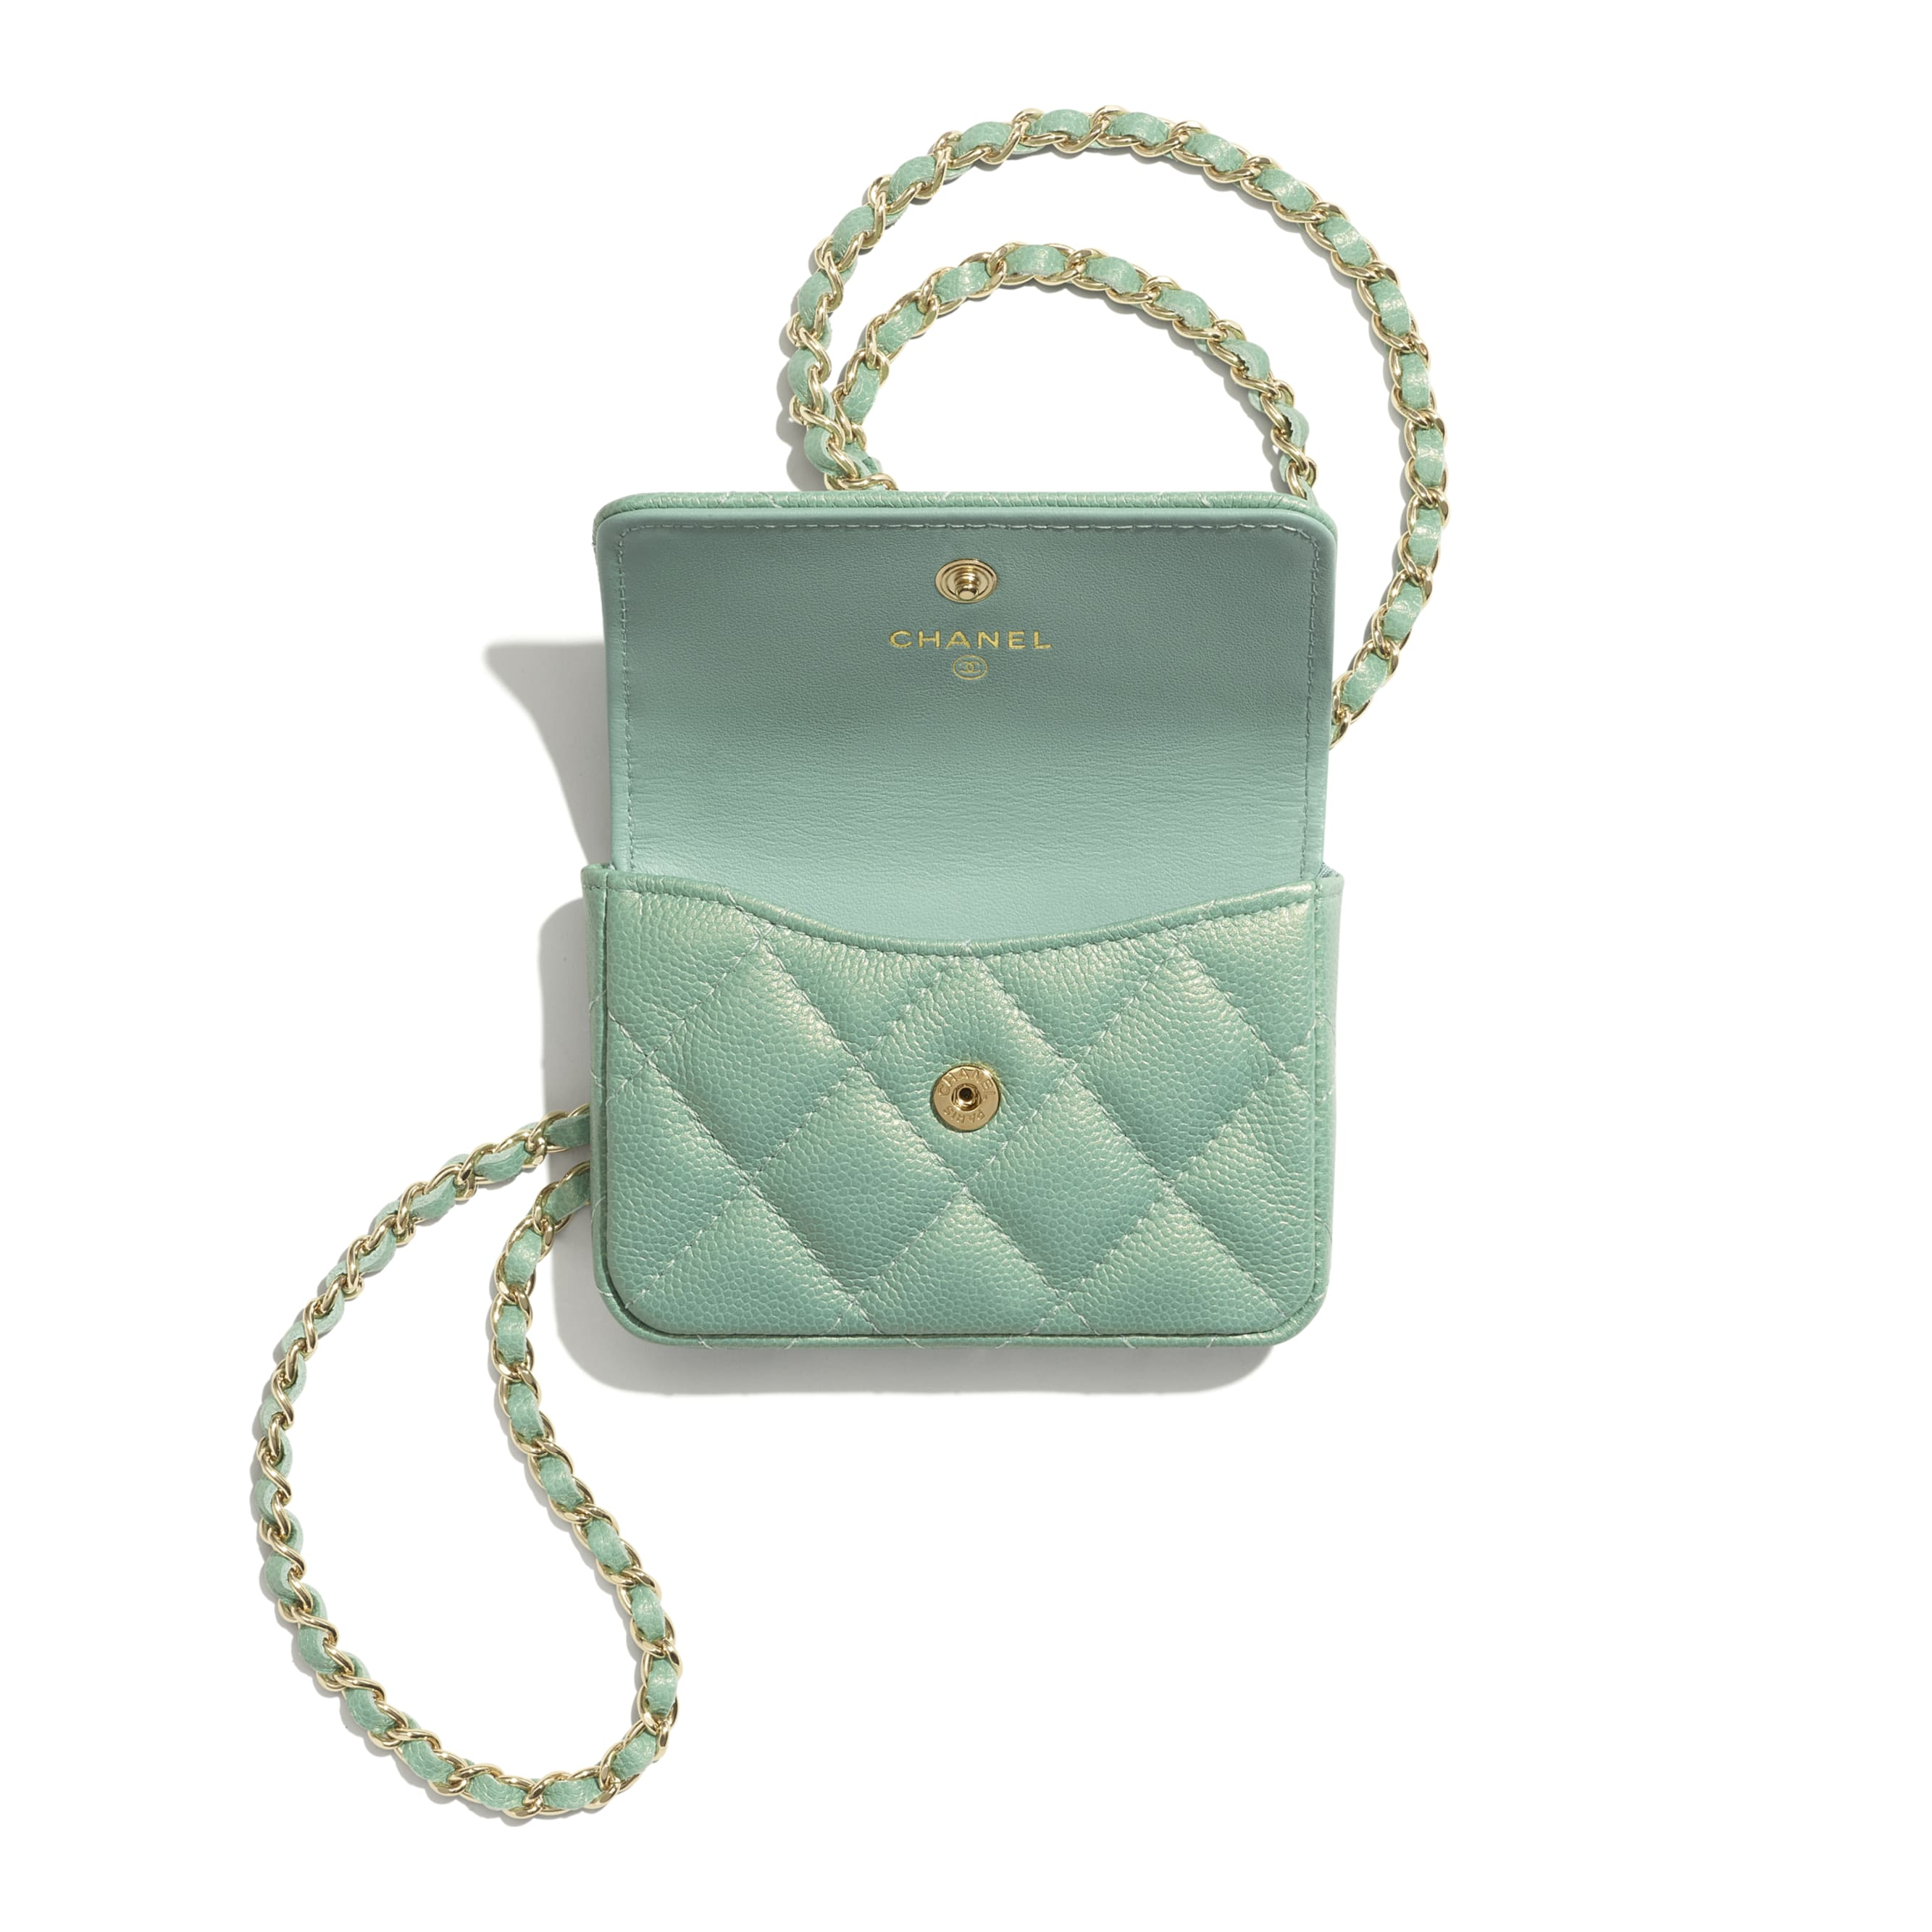 Flap Coin Purse with Chain - Green - Iridescent Grained Calfskin, Imitation Pearls & Gold-Tone Metal - CHANEL - Alternative view - see standard sized version